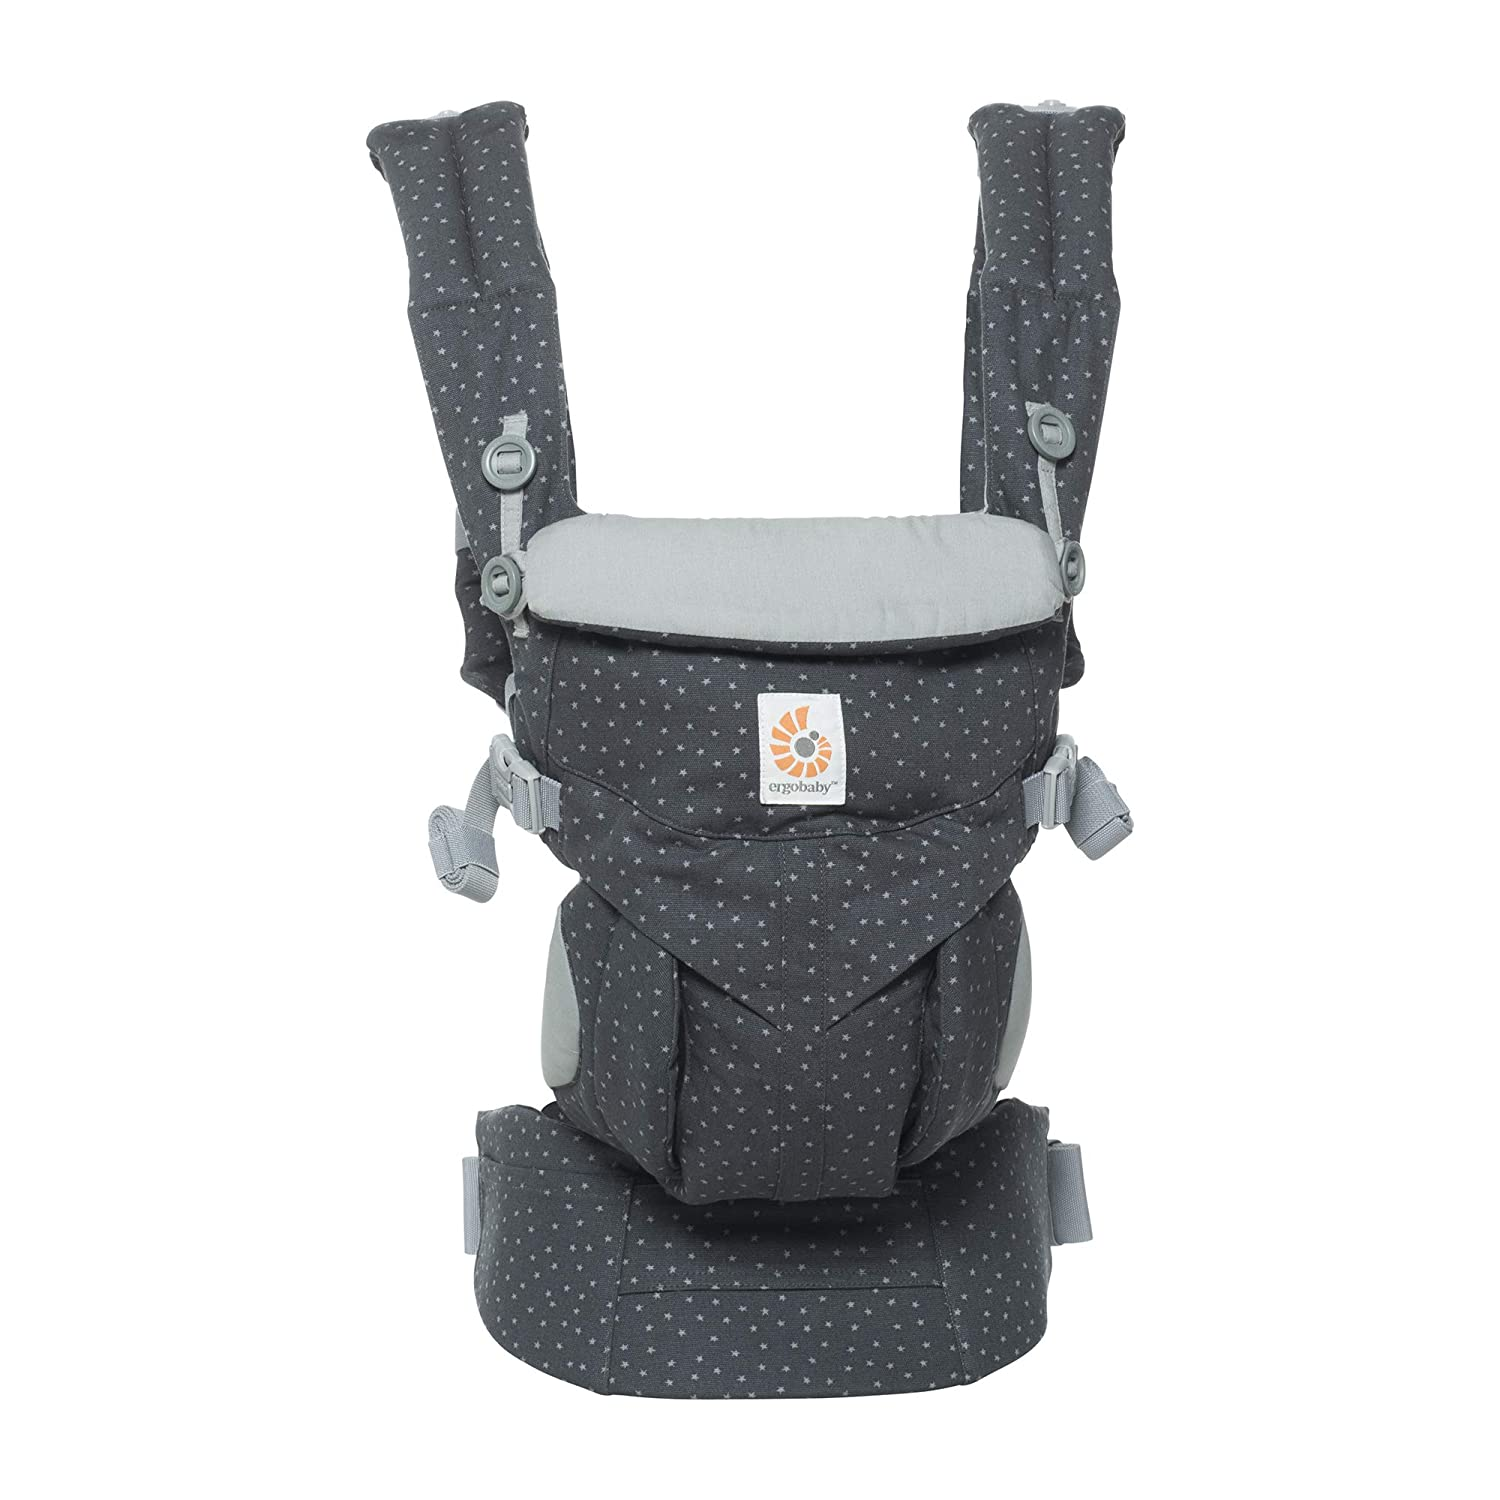 Ergobaby OMNI 360 All-in-One Ergonomic Baby Carrier, Starry Sky BCS360STARRY